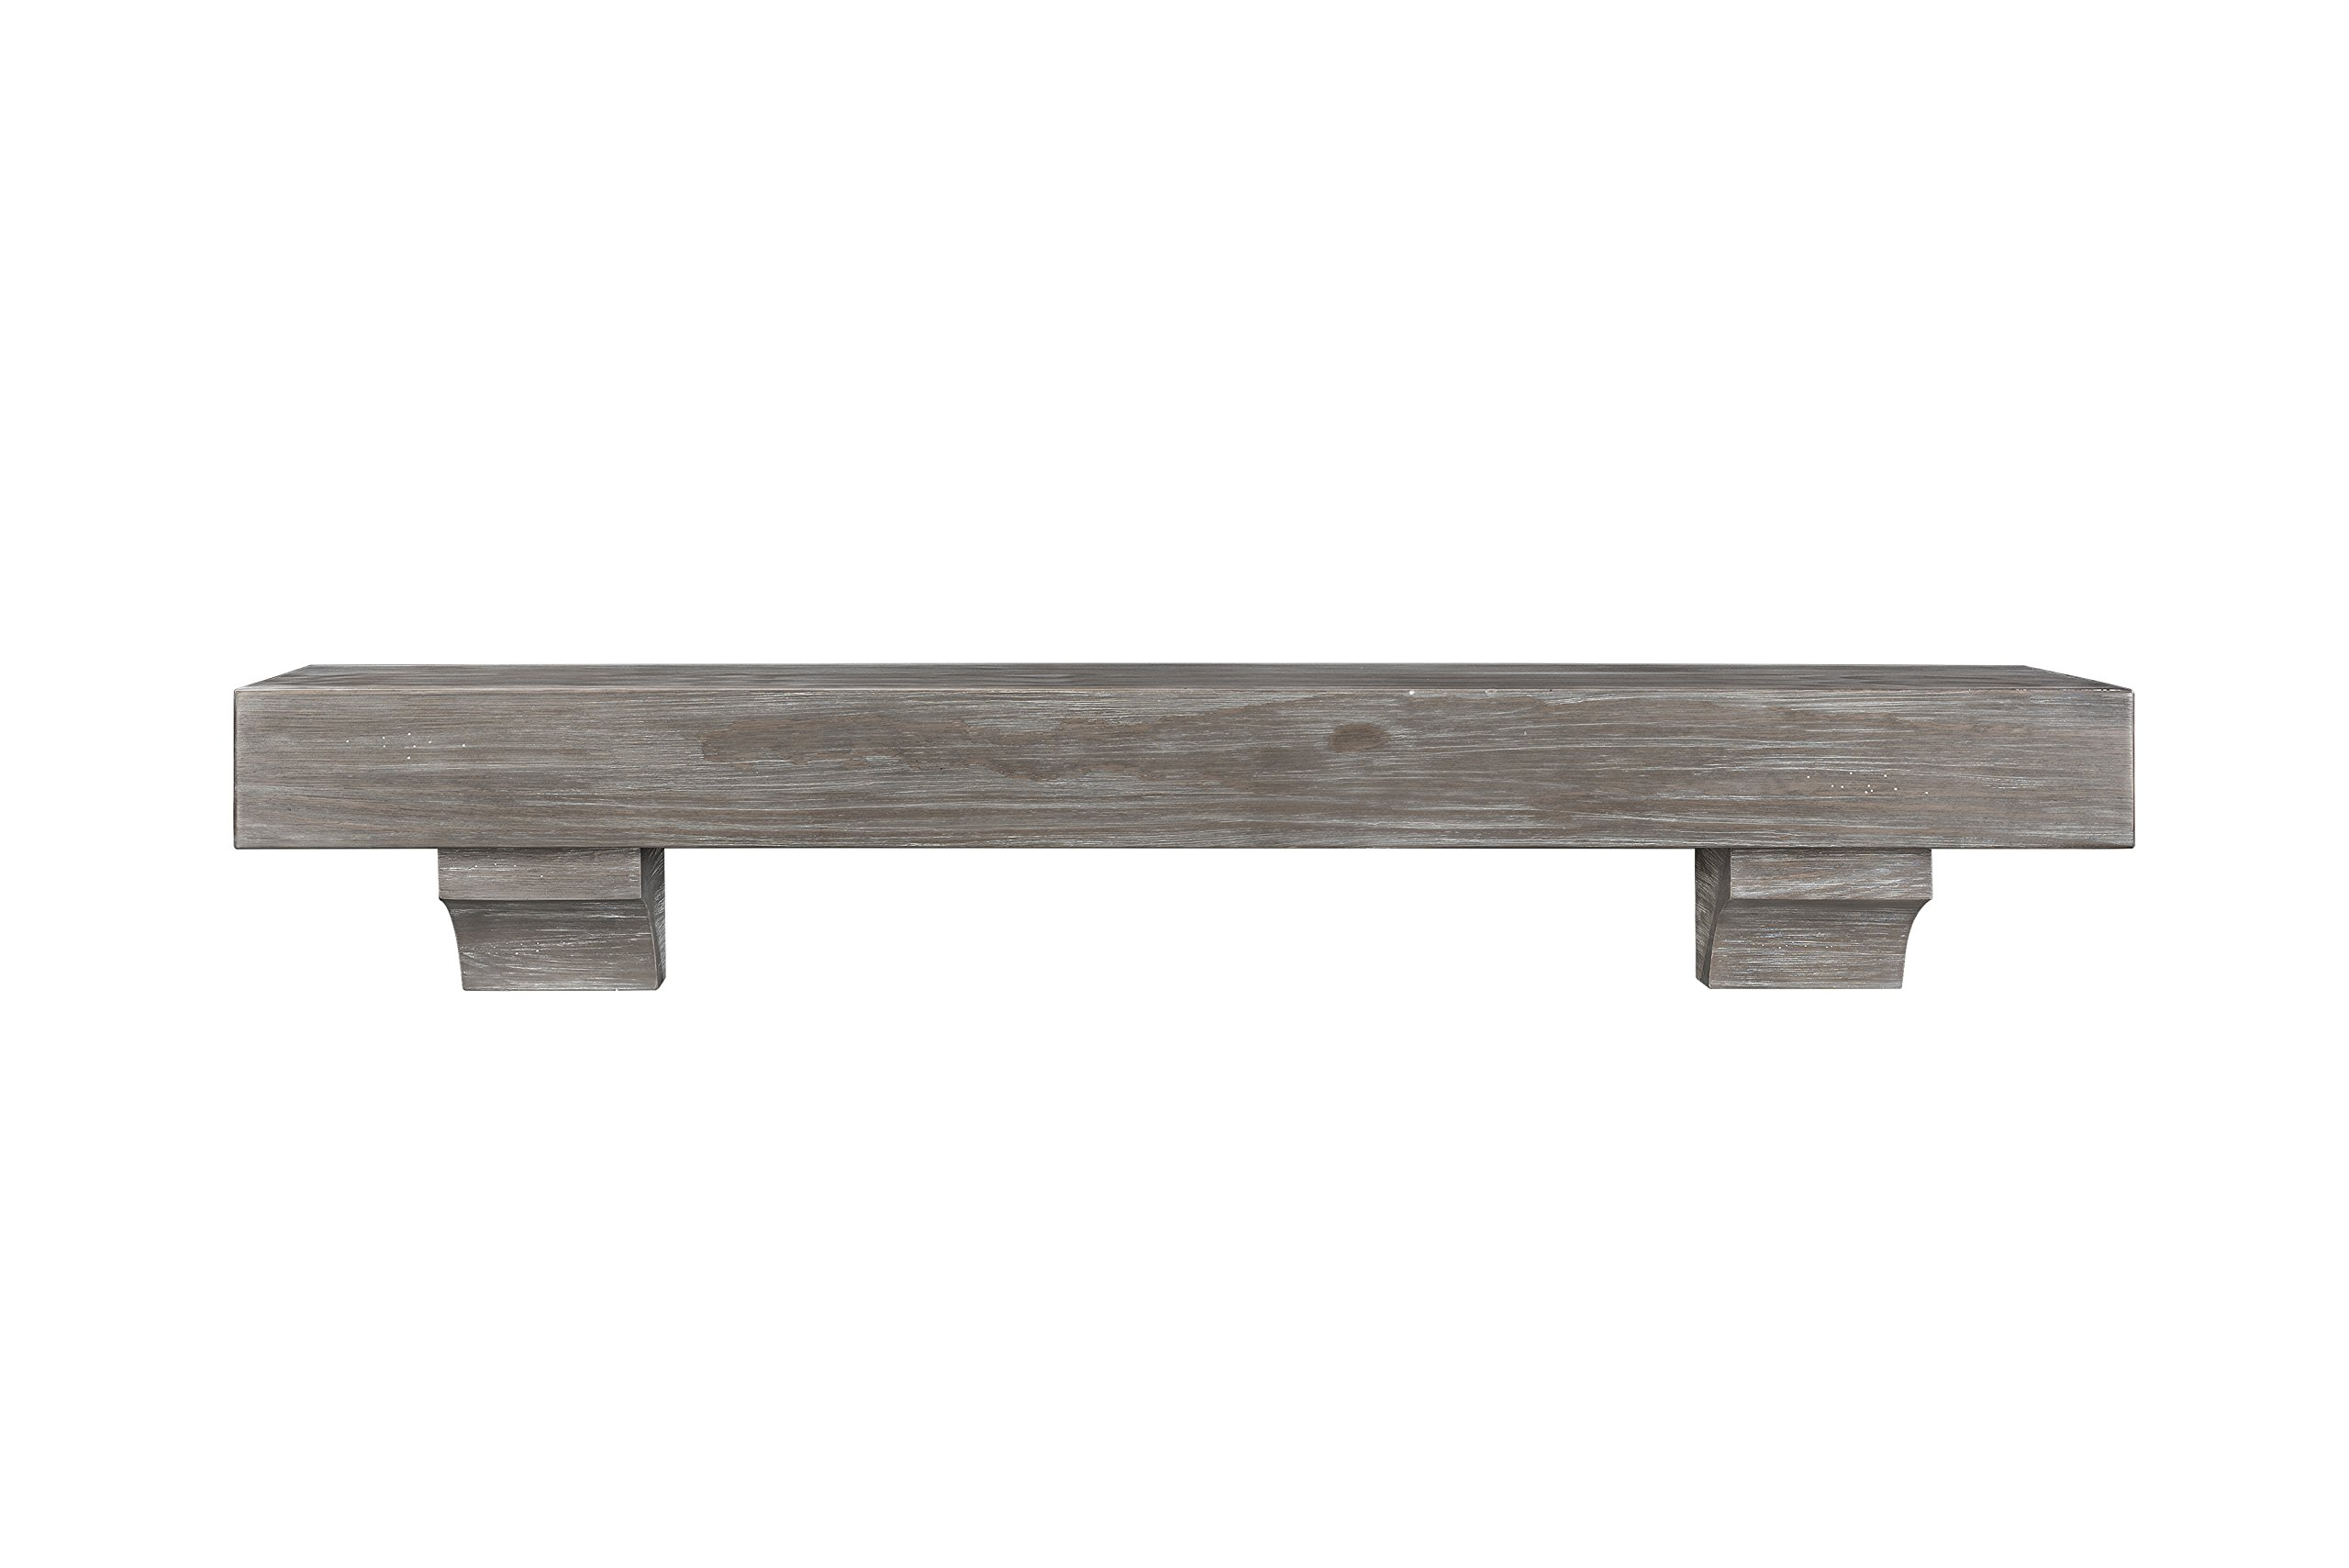 Pearl Mantels 412-48-27 Shenandoah Mantel, 48-Inch, Cottage Gray Distressed by Pearl Mantels